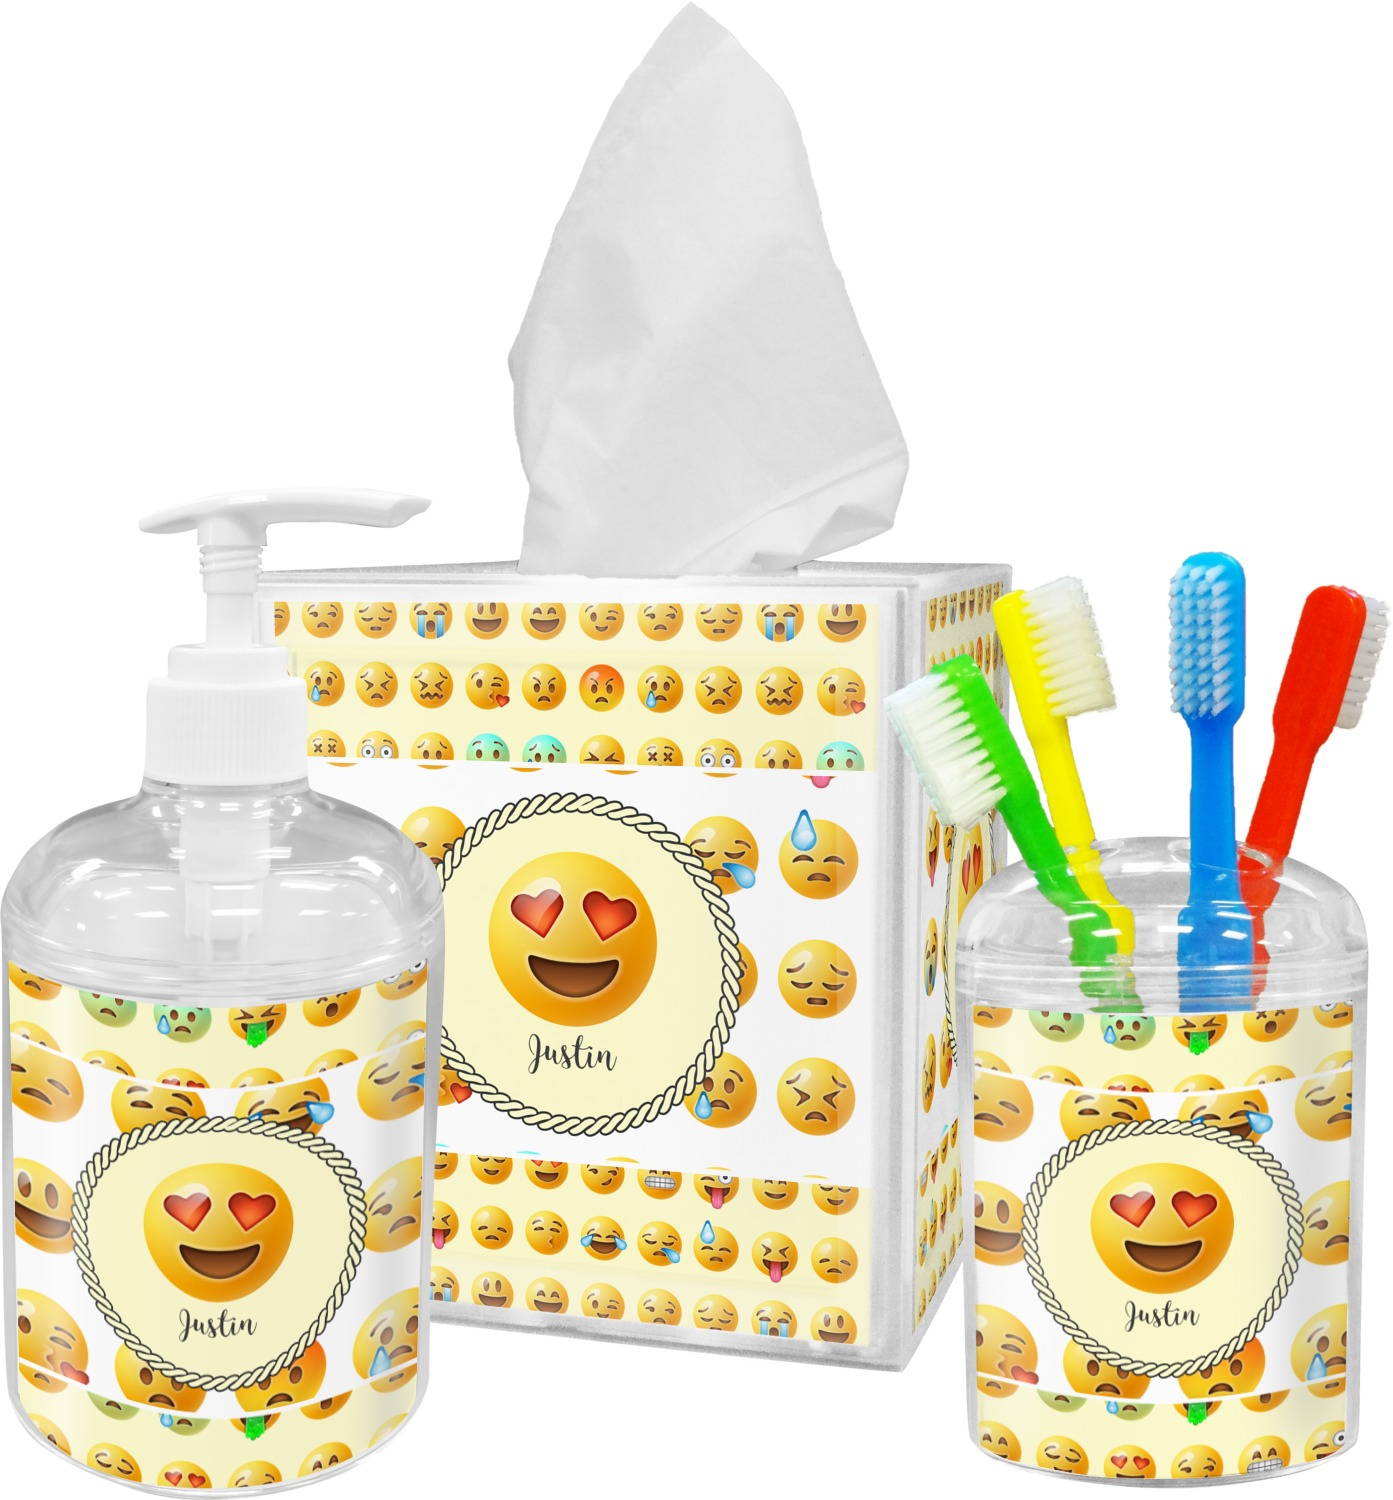 Emojis bathroom accessories set personalized - Monogrammed bathroom accessories ...